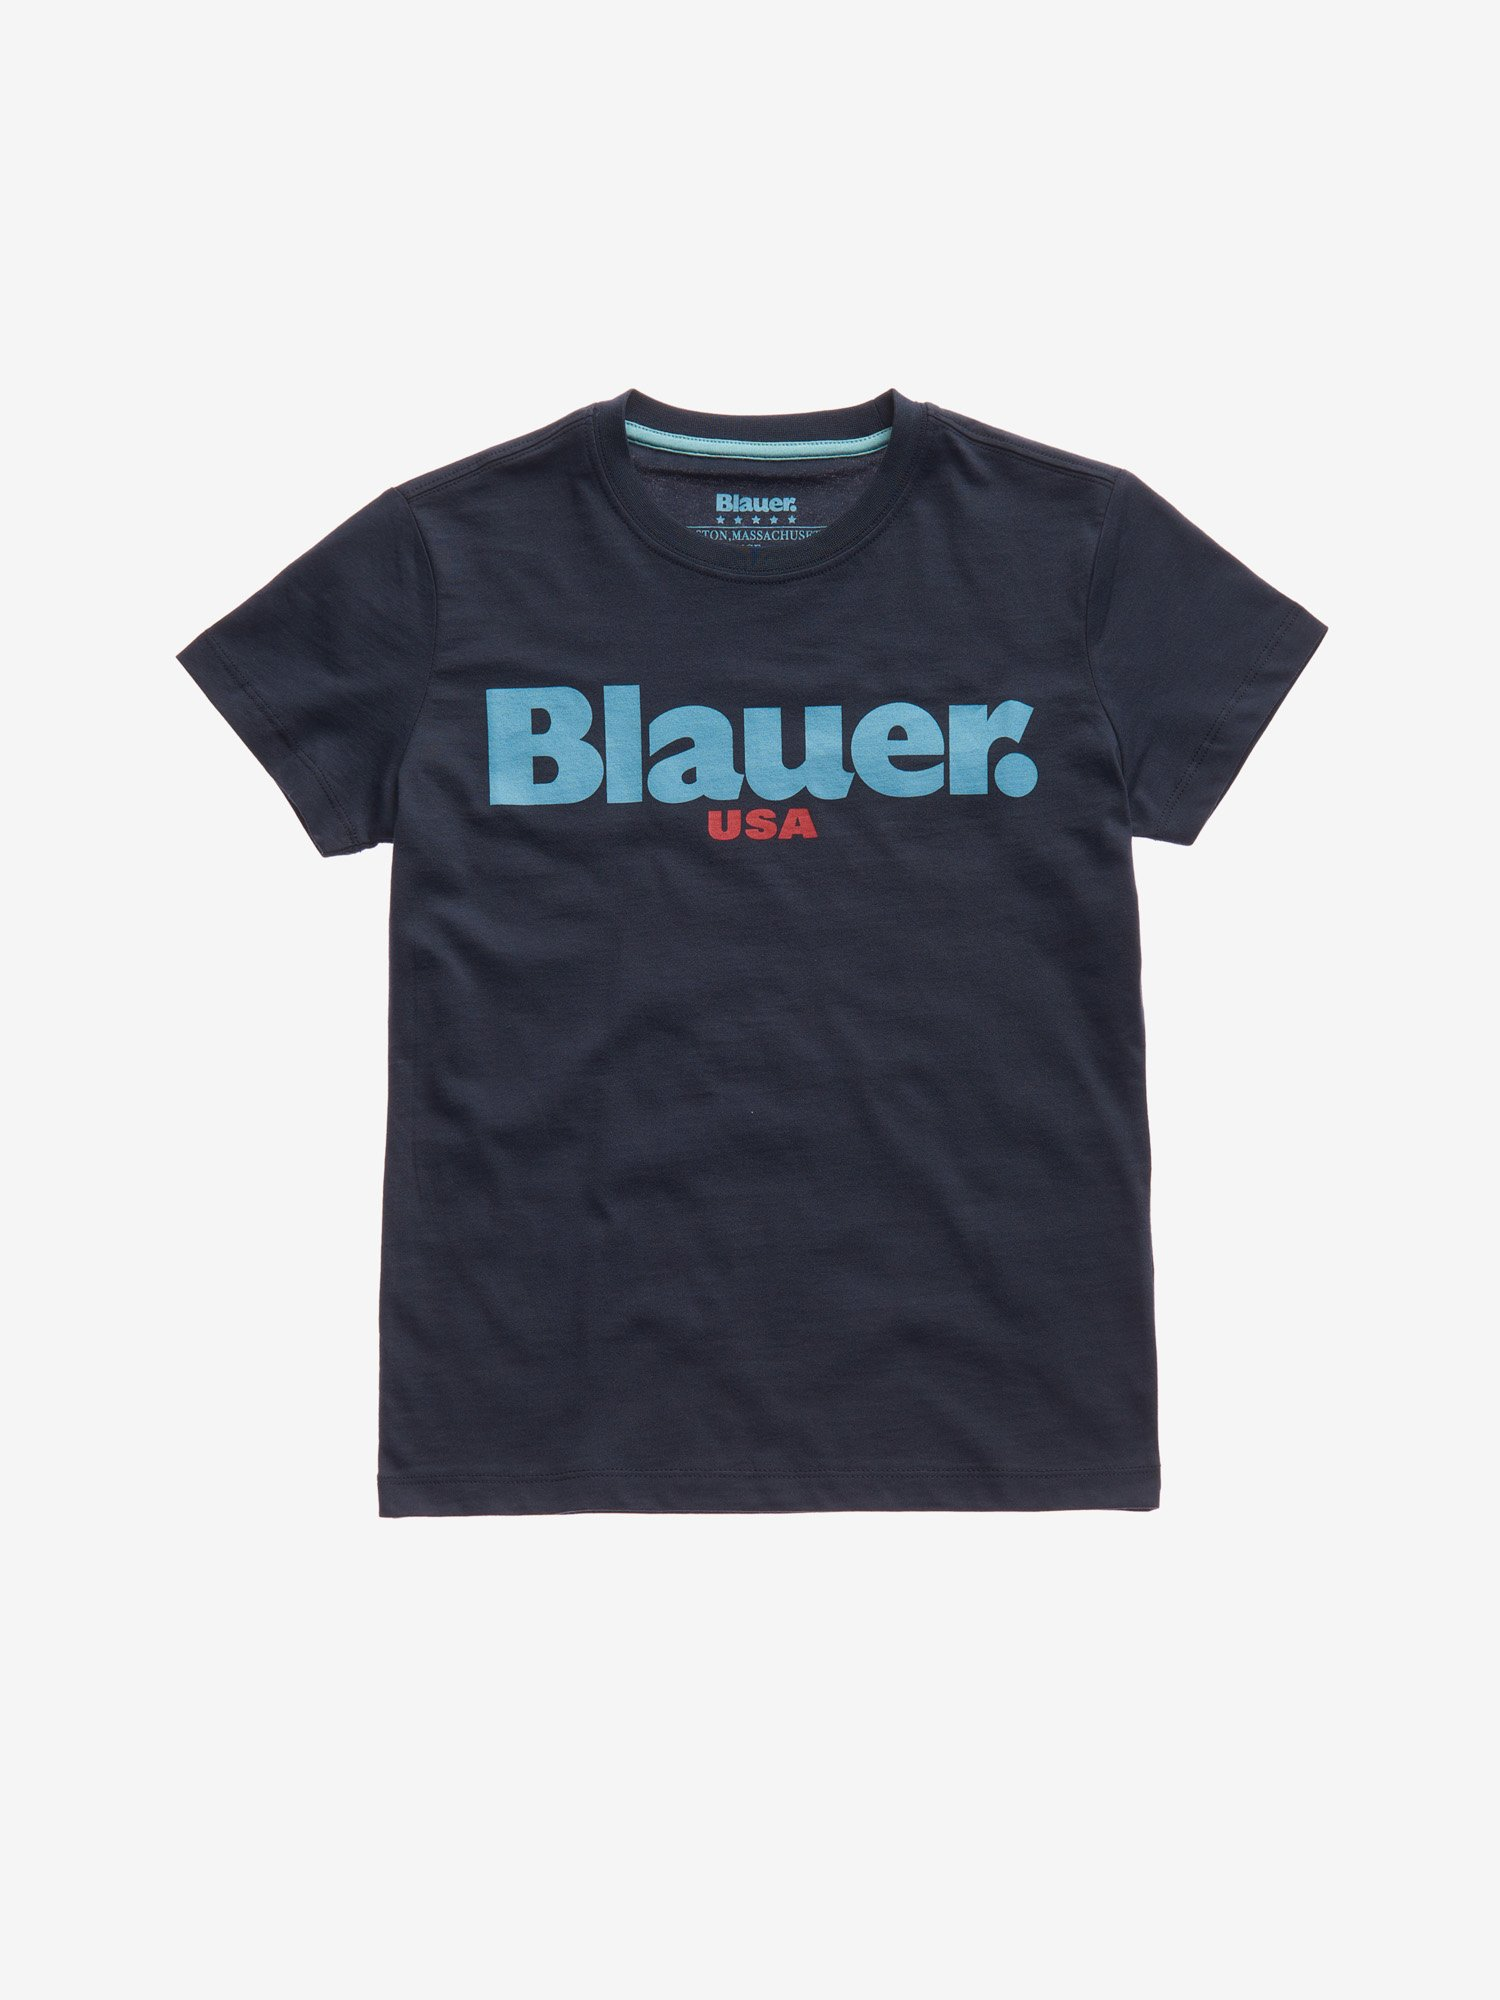 JUNIOR BASIC BLAUER T-SHIRT - Blauer